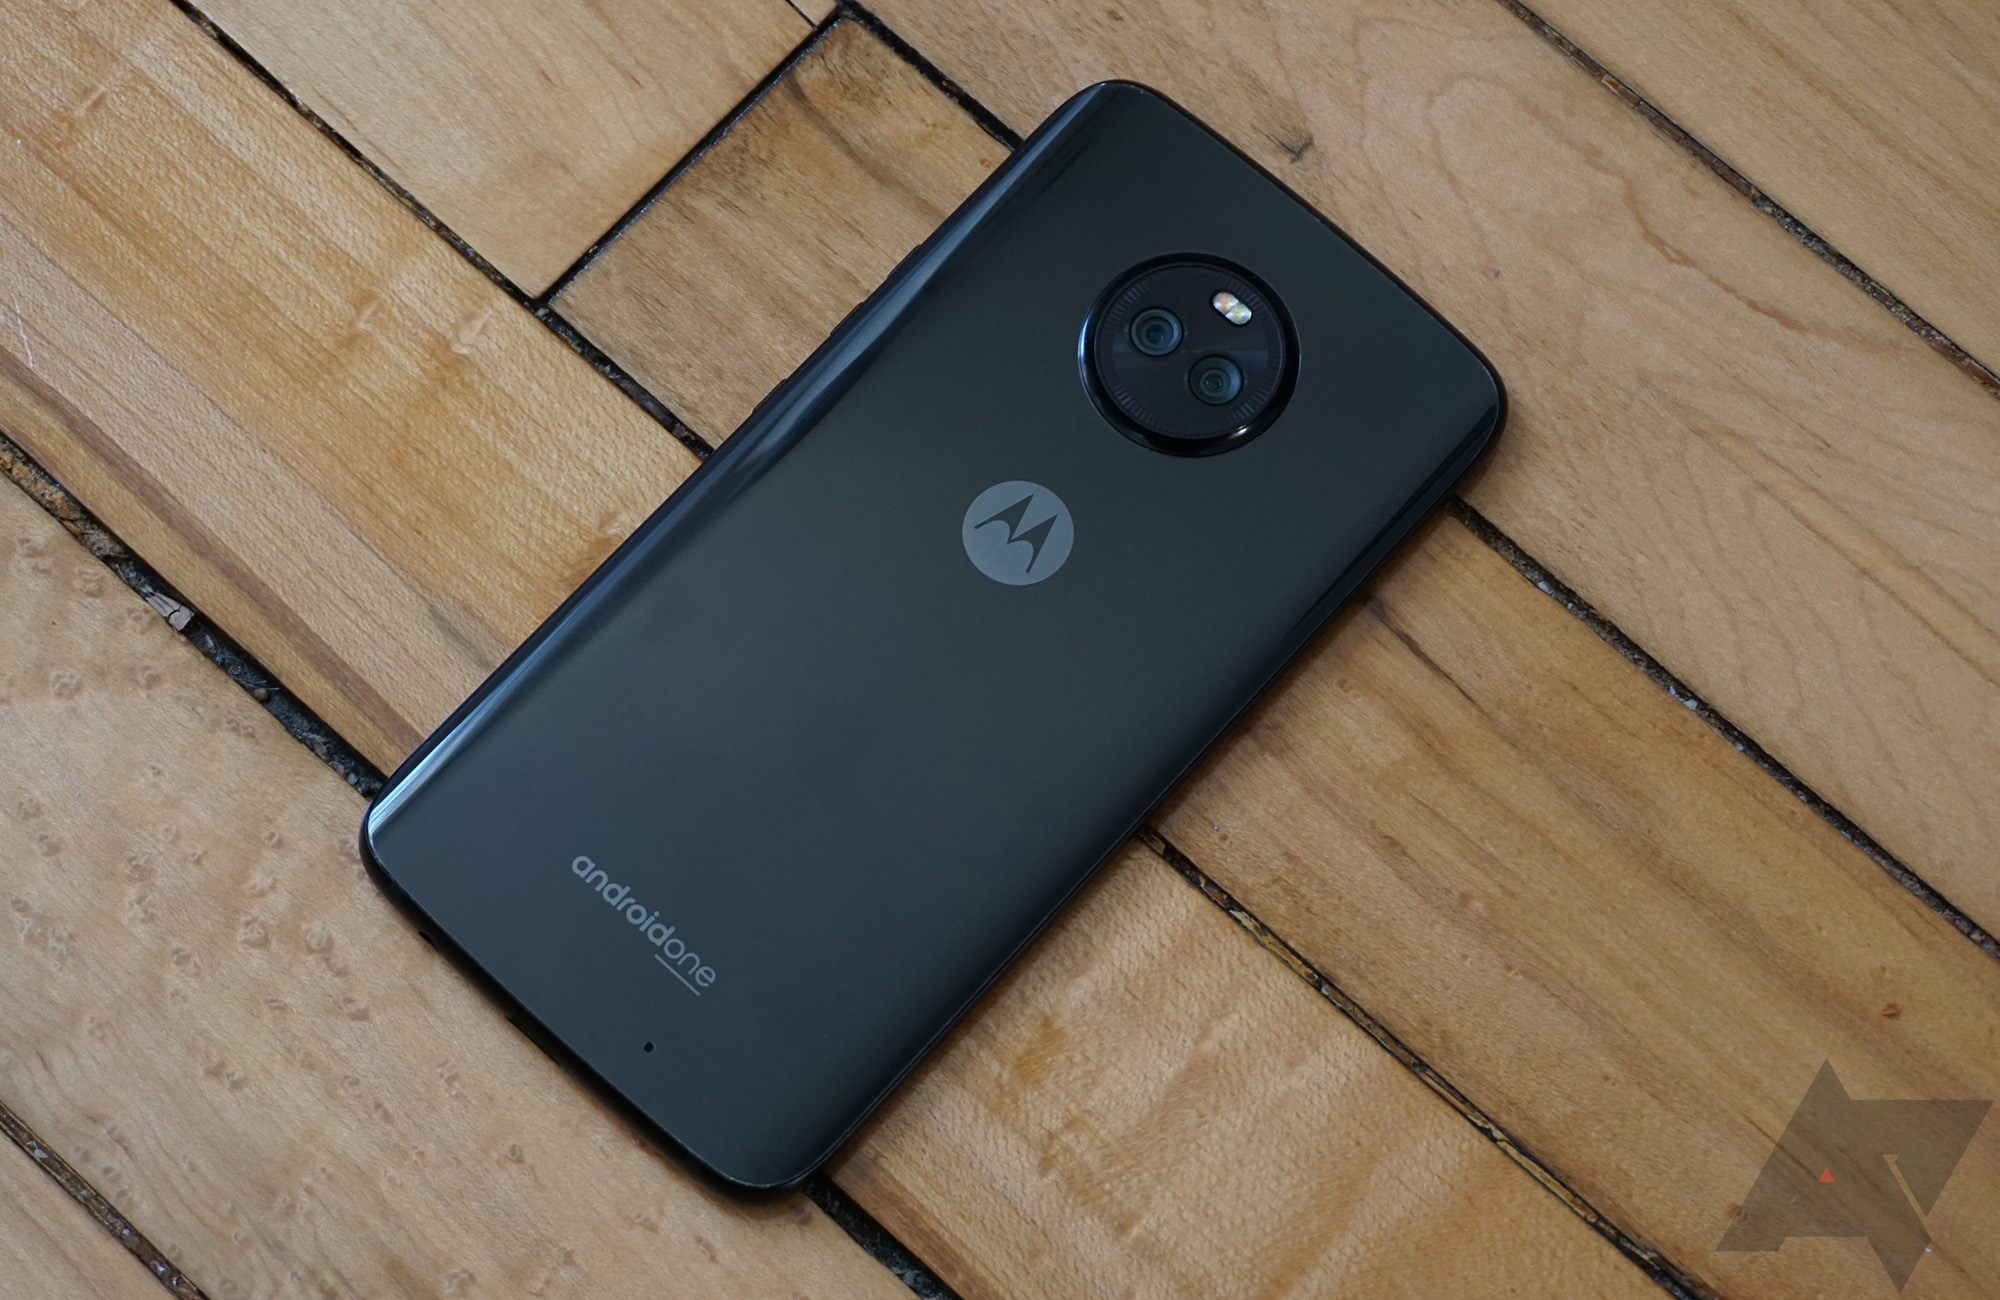 Moto X4 Android One Edition Review This Is Not The X Youre Tiny Efficient High Power Led Camera Flash Solutions For Cell Phone Motorola Had Hit A Rough Patch When Google Came Calling Back In 2011 It Took Some Time To Clear Out Queue Of Sub Standard Devices But First True